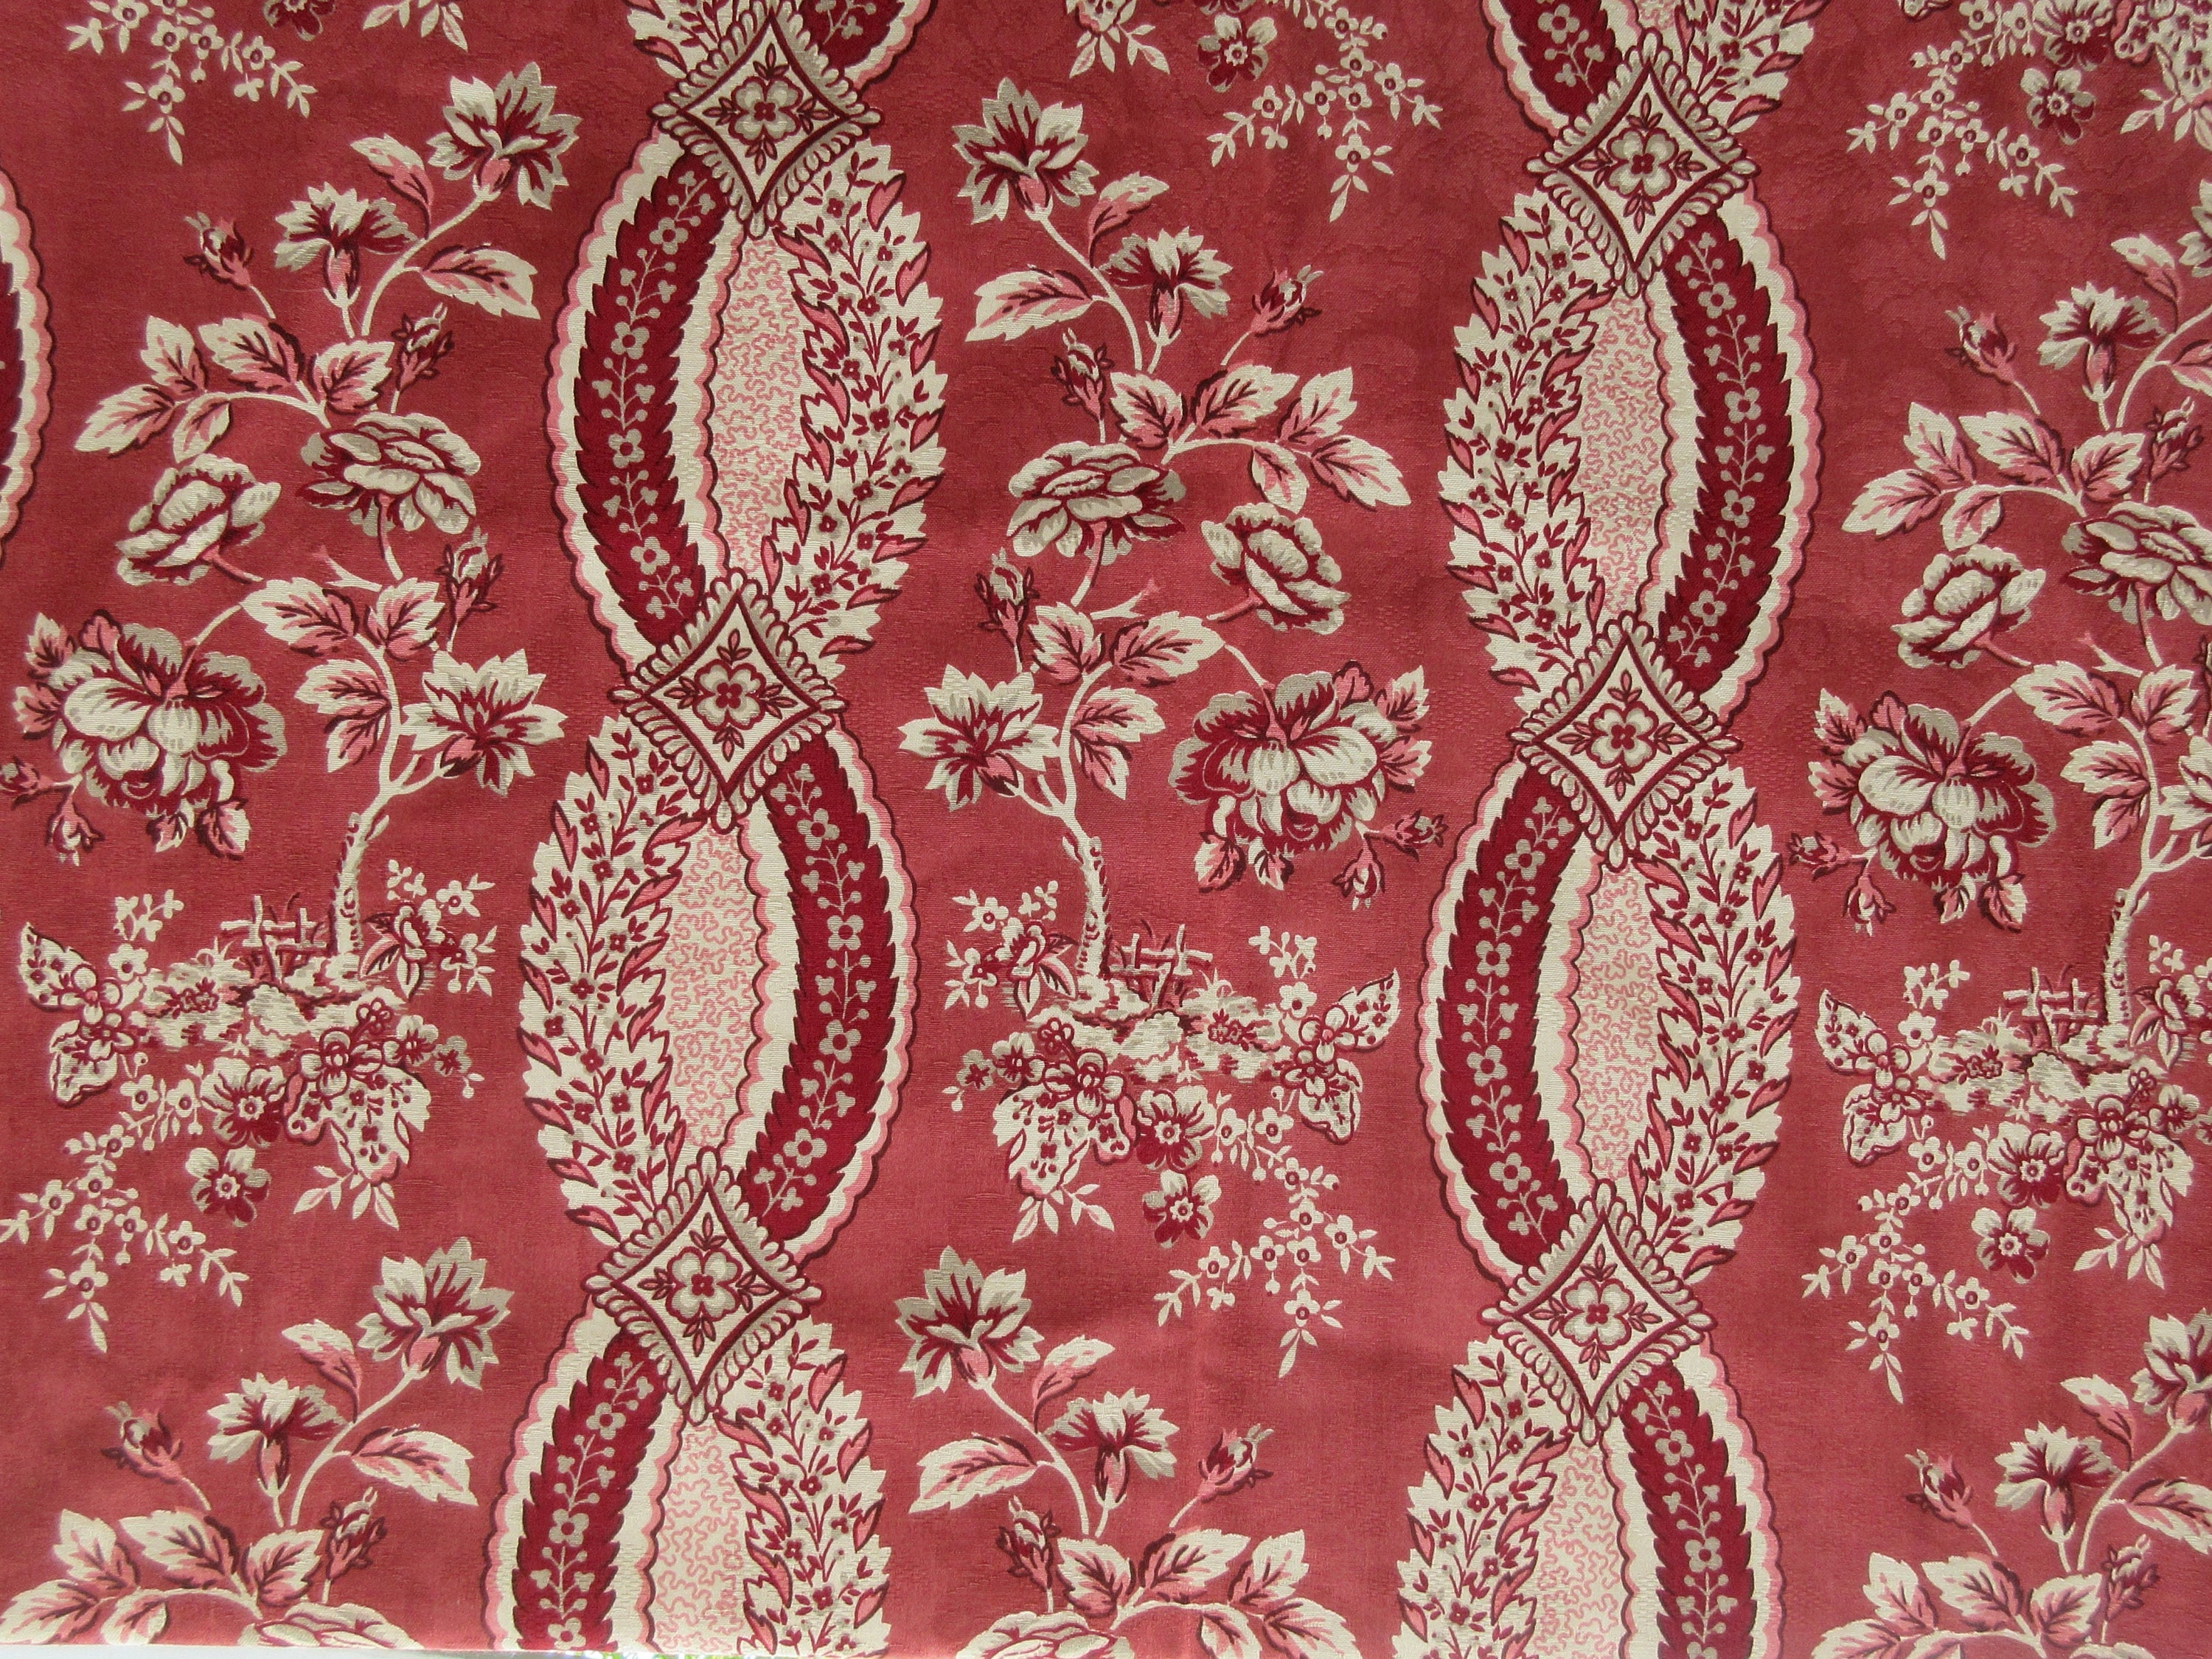 Waverly Home Dec Fabric One Yard Toile Like Floral Fabric Etsy